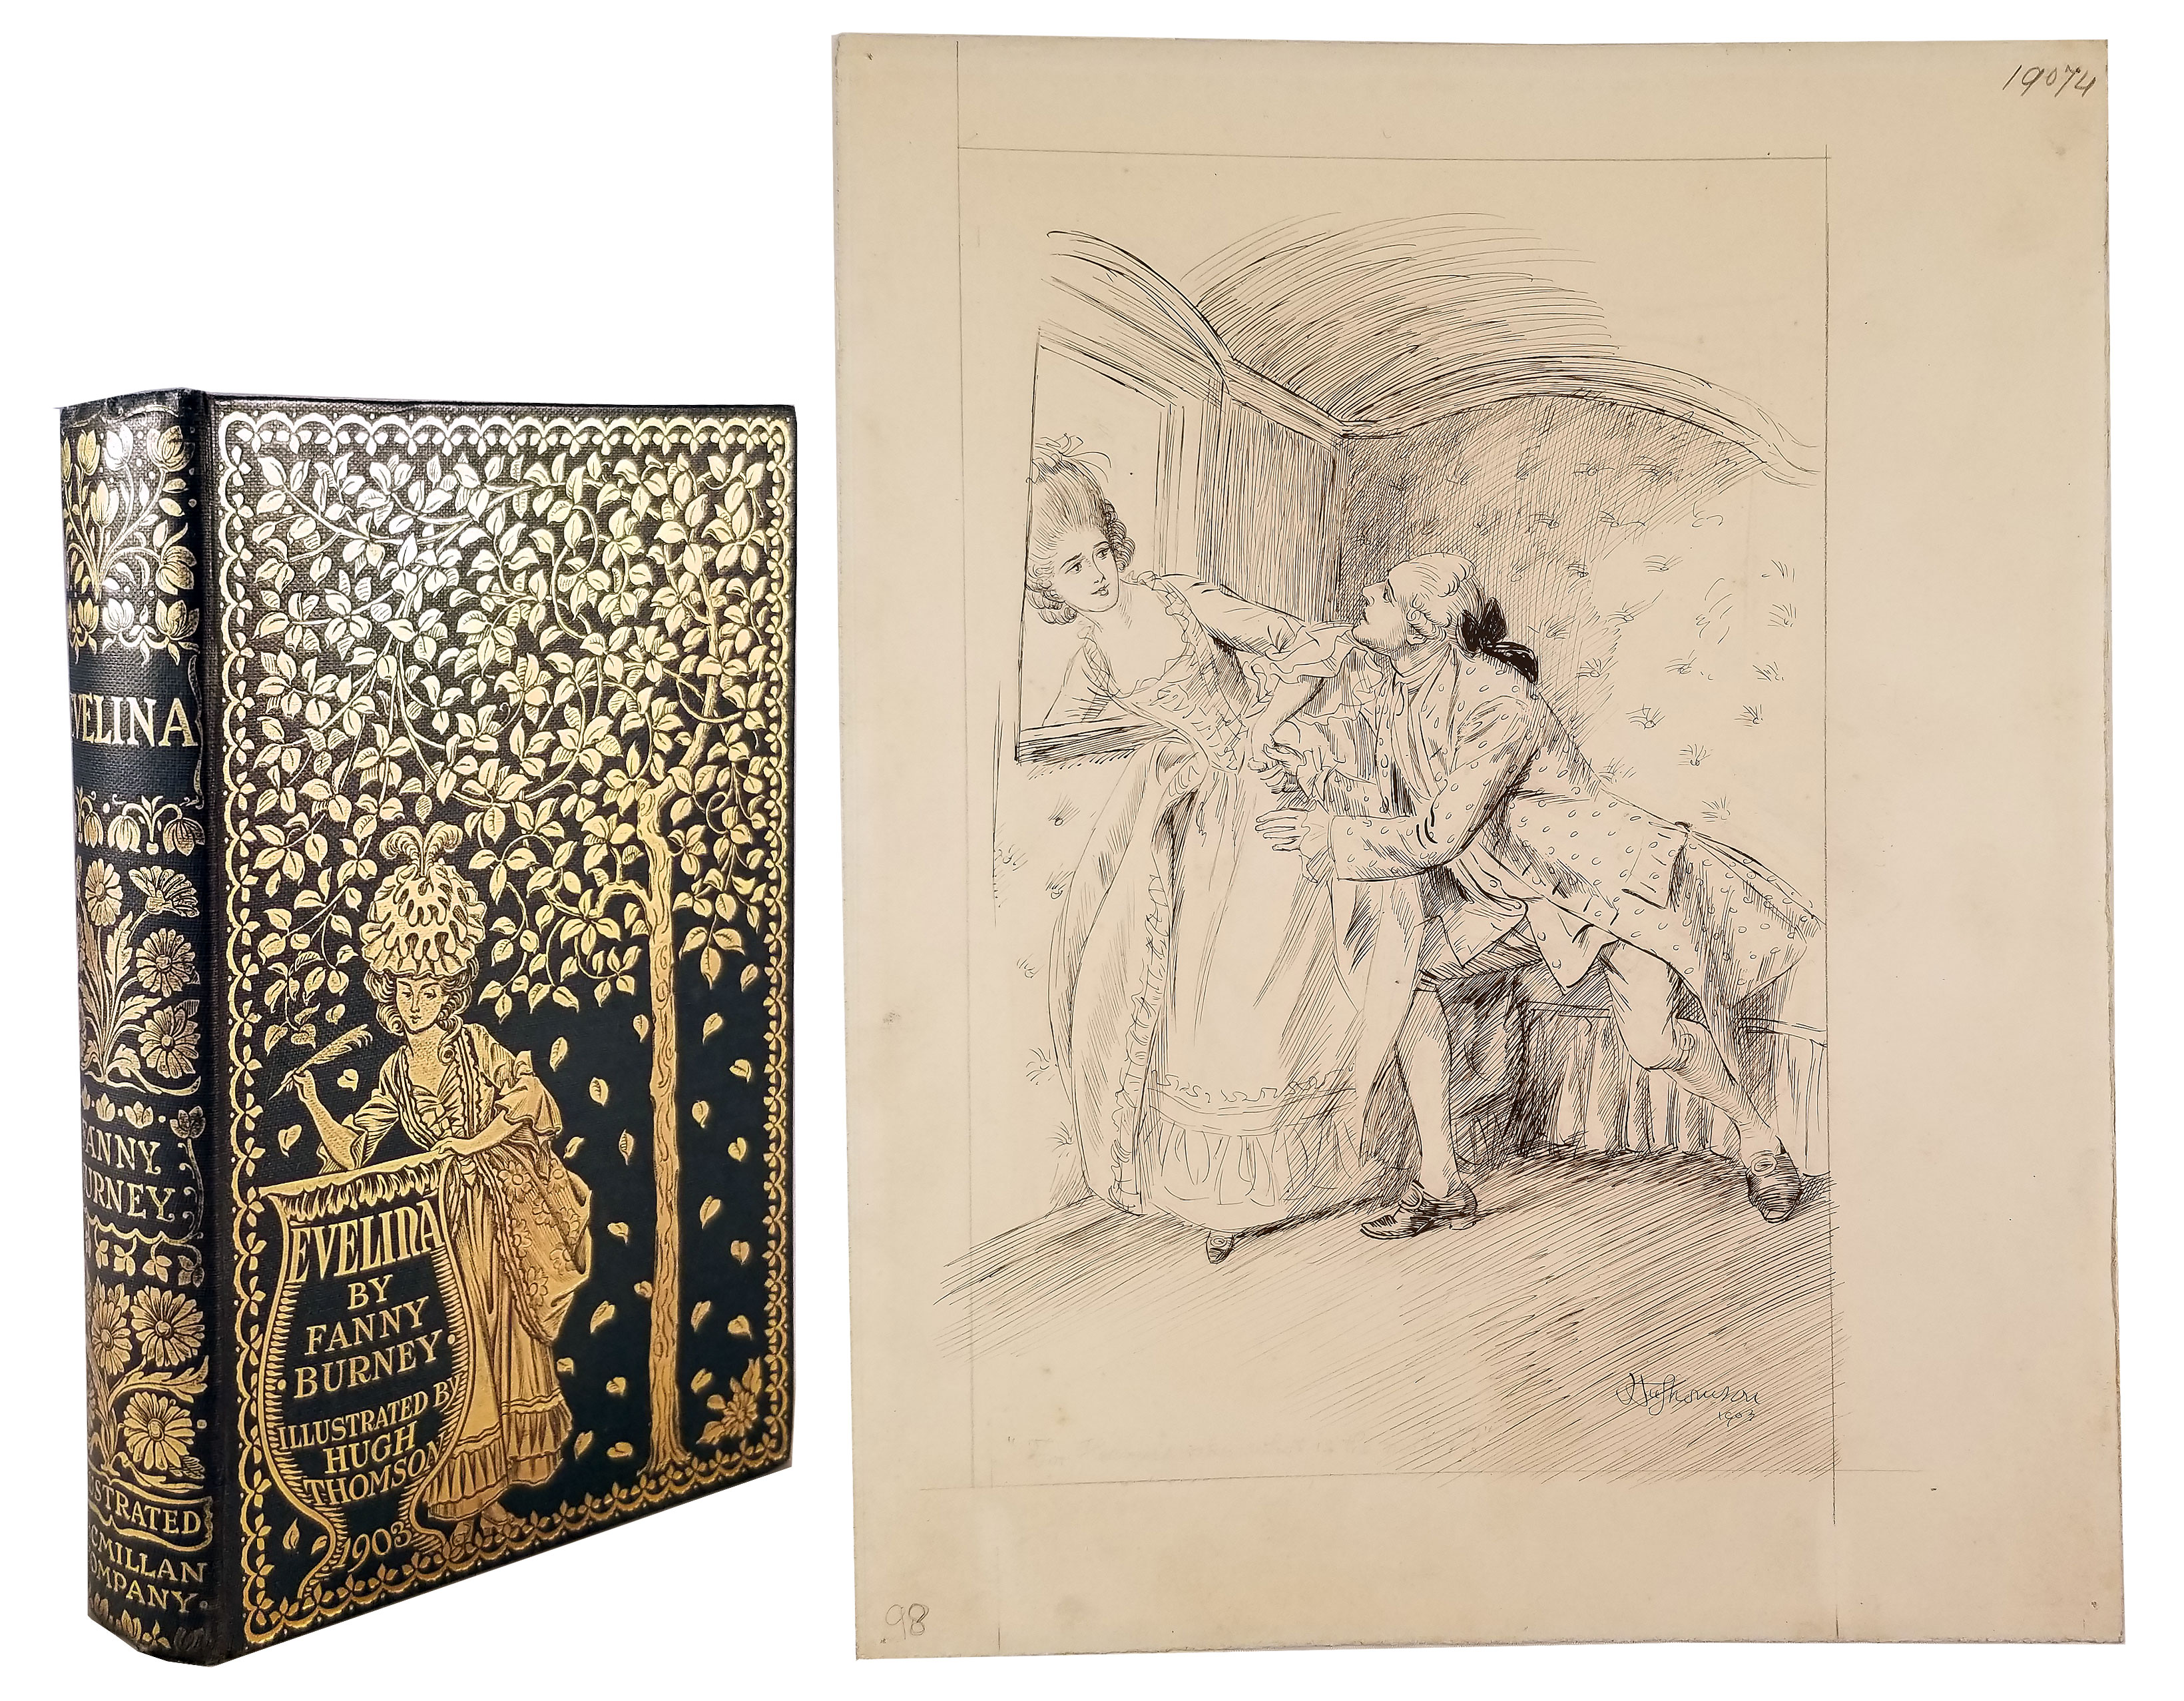 Image for EVELINA TOGETHER WITH AN ORIGINAL HUGH THOMSON PEN AND INK DRAWING USED FOR ONE OF THE ILLUSTRATIONS